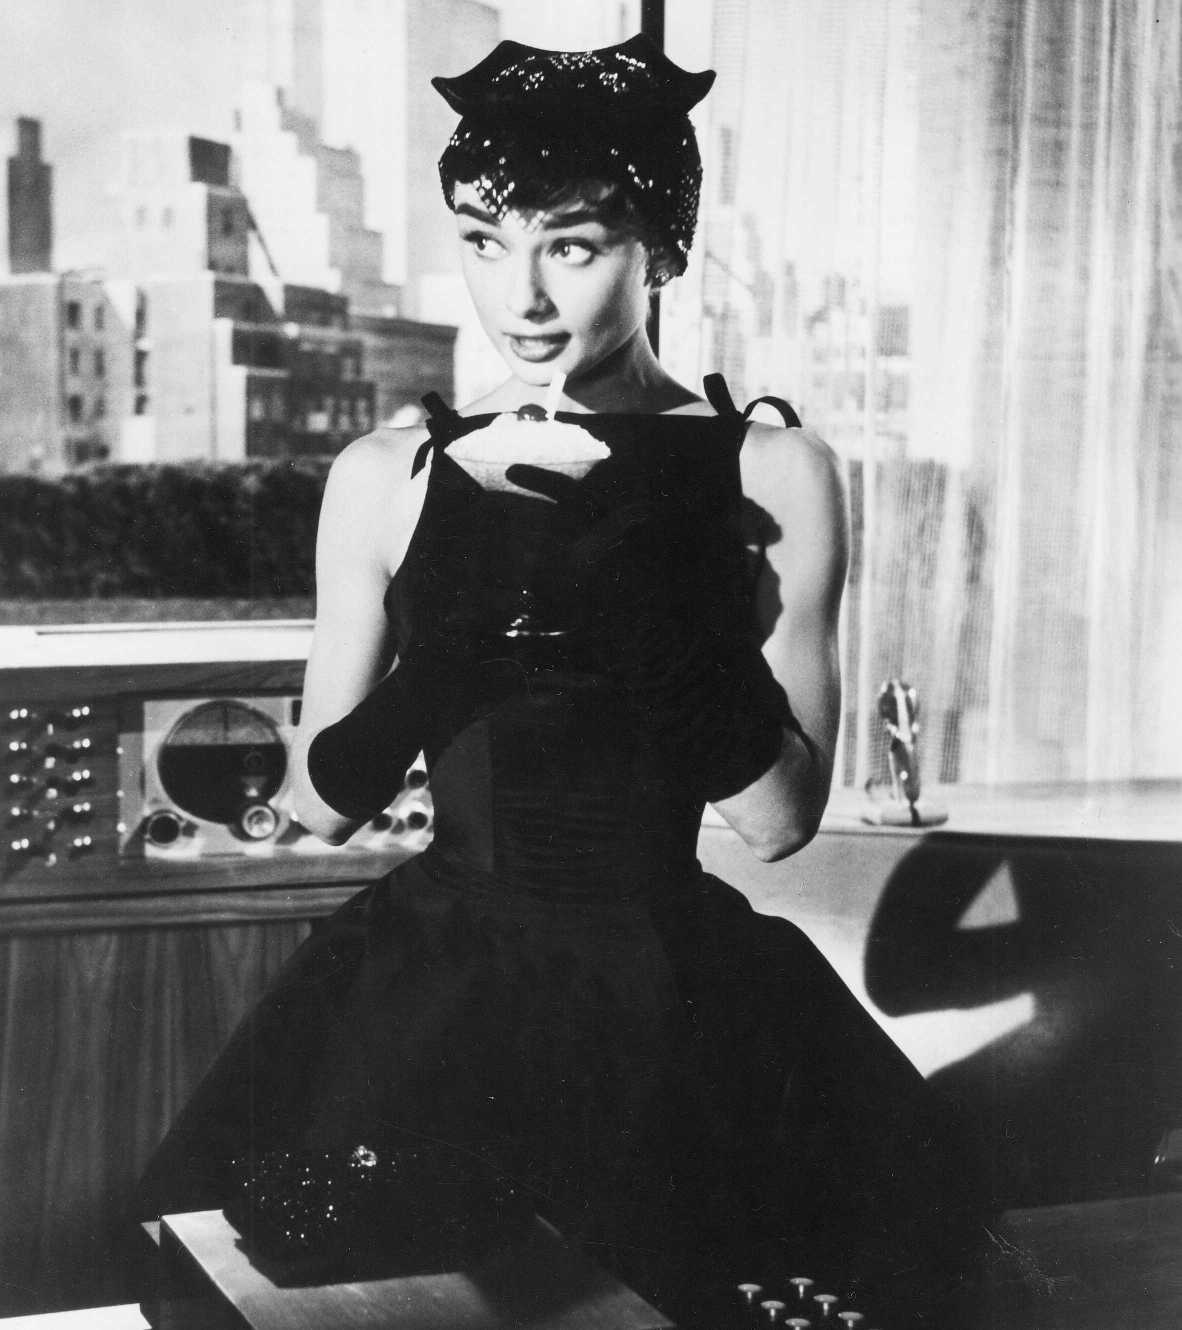 To wish Hepburn a happy birthday and help you celebrate this great lady in style, we have gathered a gaggle of this season's best little black dresses—from ruffled to strappy, lacy to sequined.